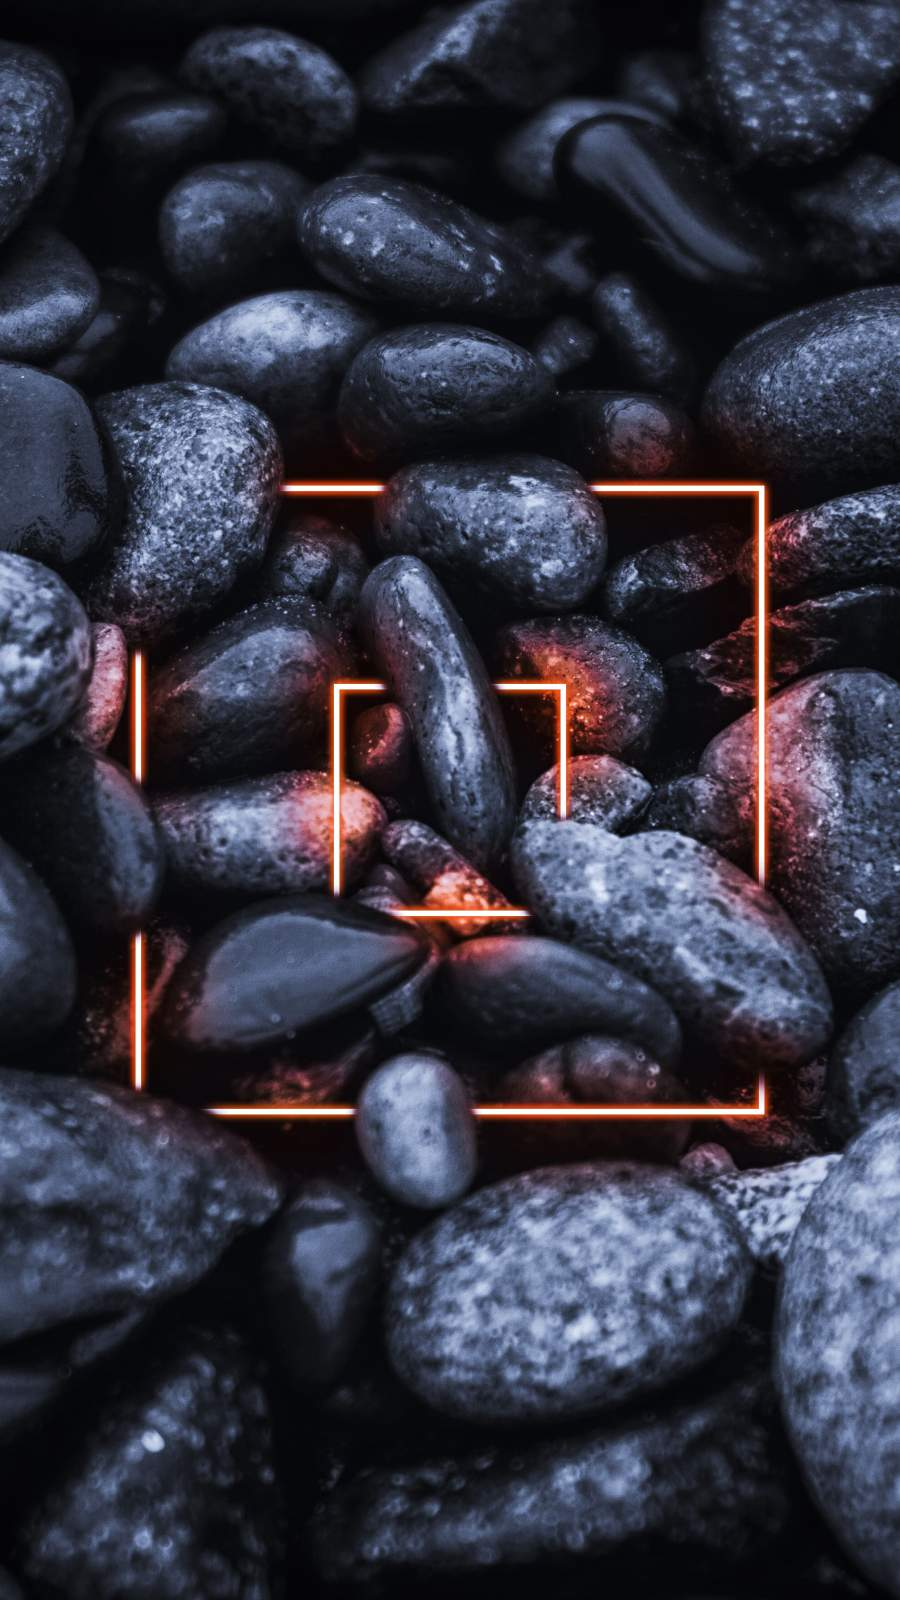 Black Stones Neon Light iPhone Wallpaper